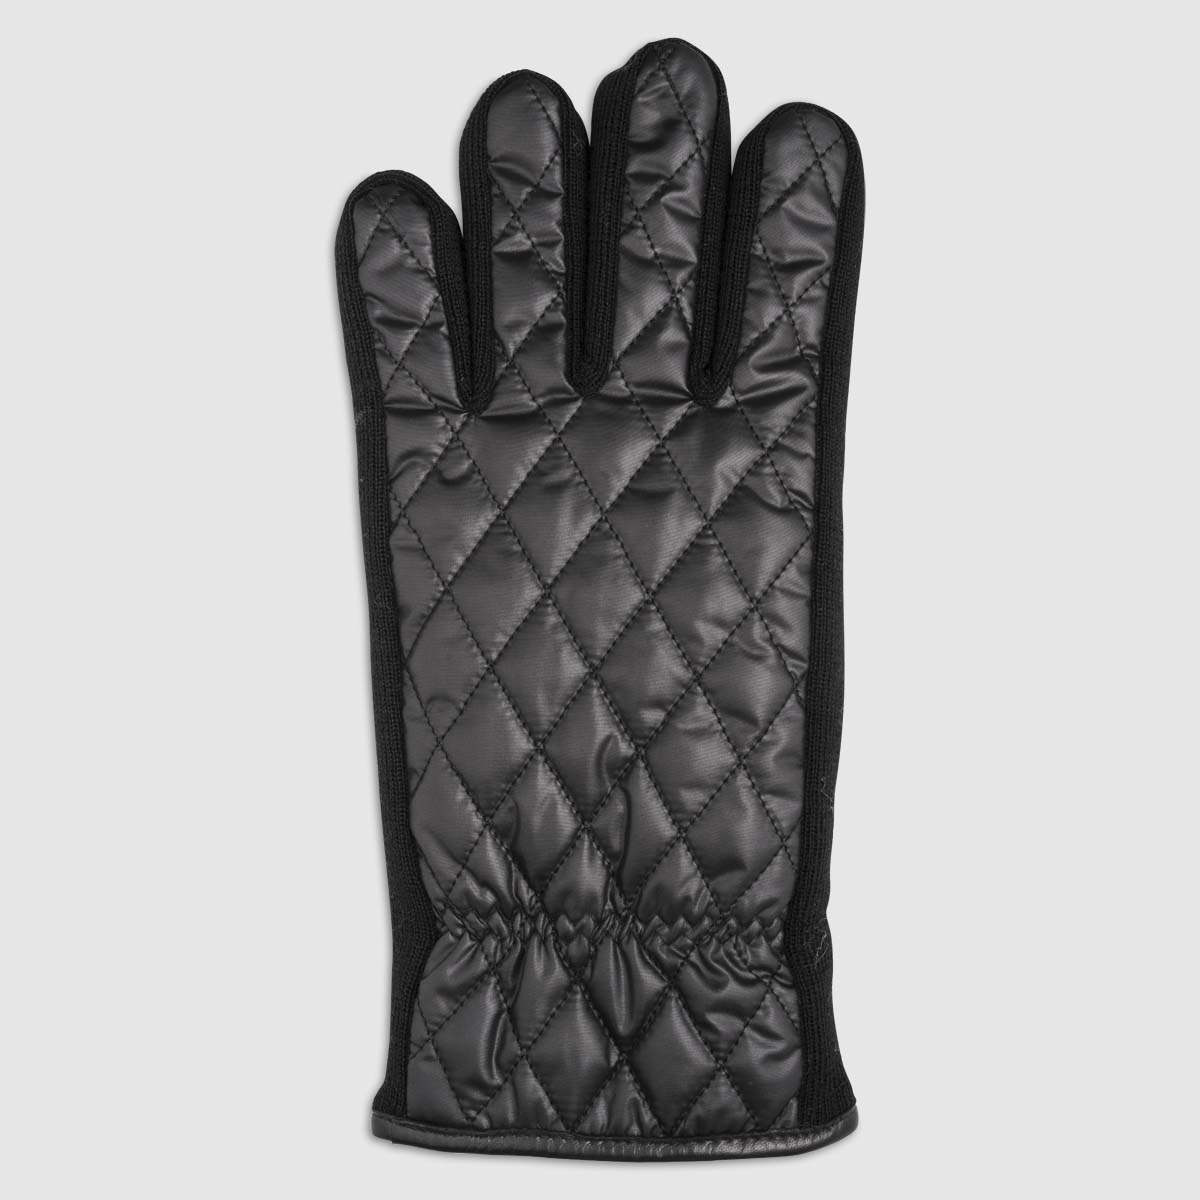 Quilted Nylon Glove with Fleece Lining in Black & Blue